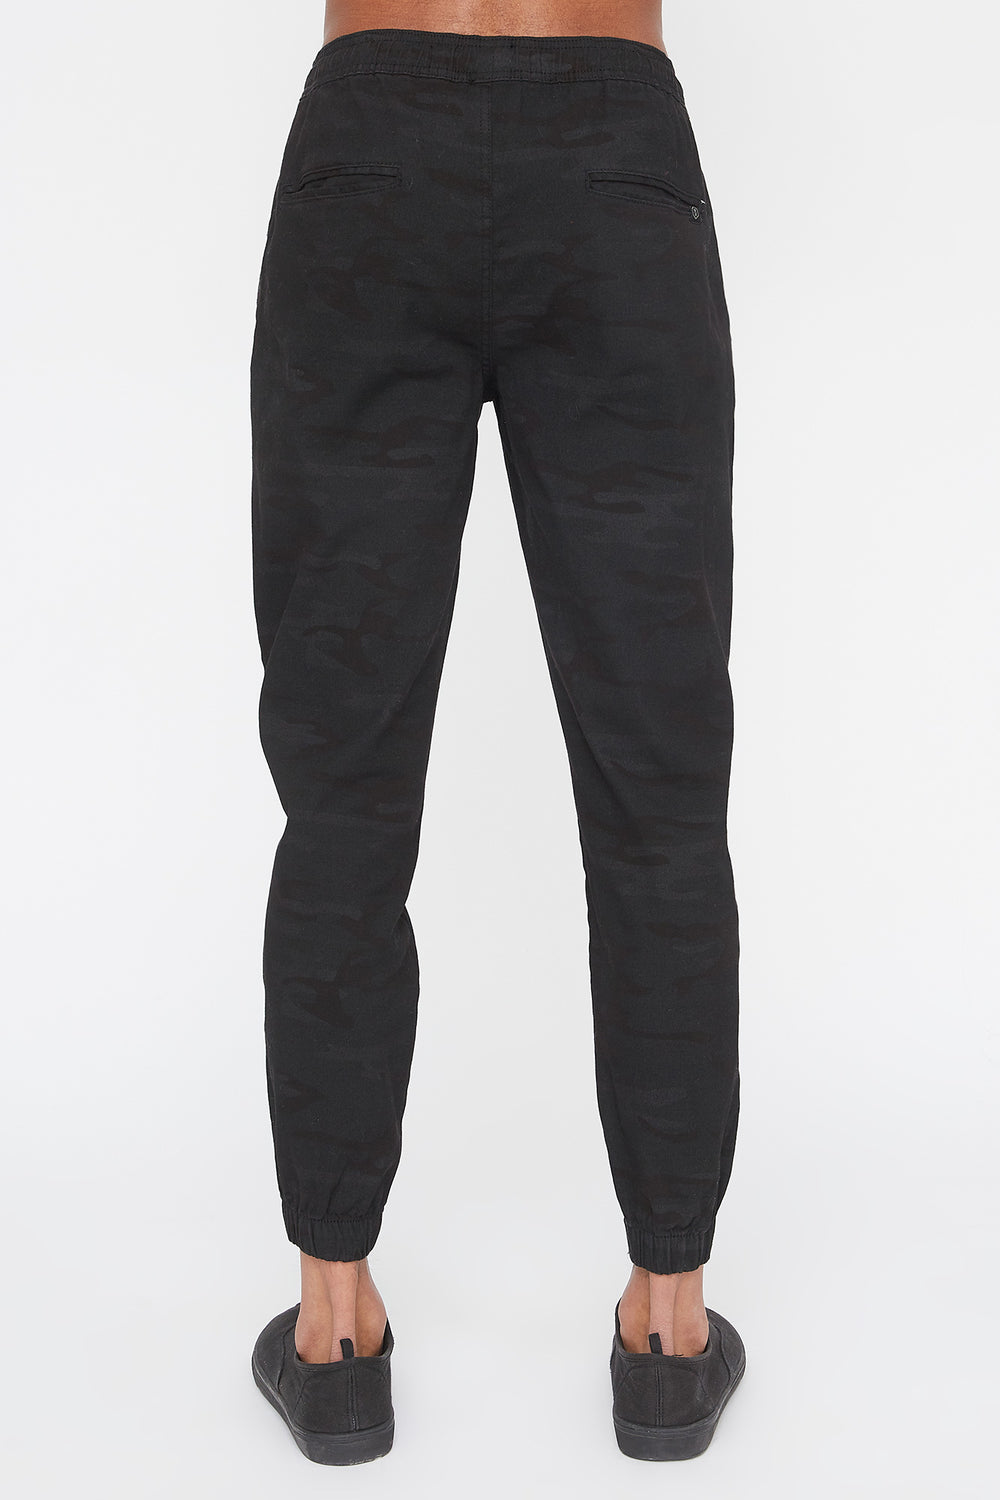 West49 Mens Camo Jogger Black with White